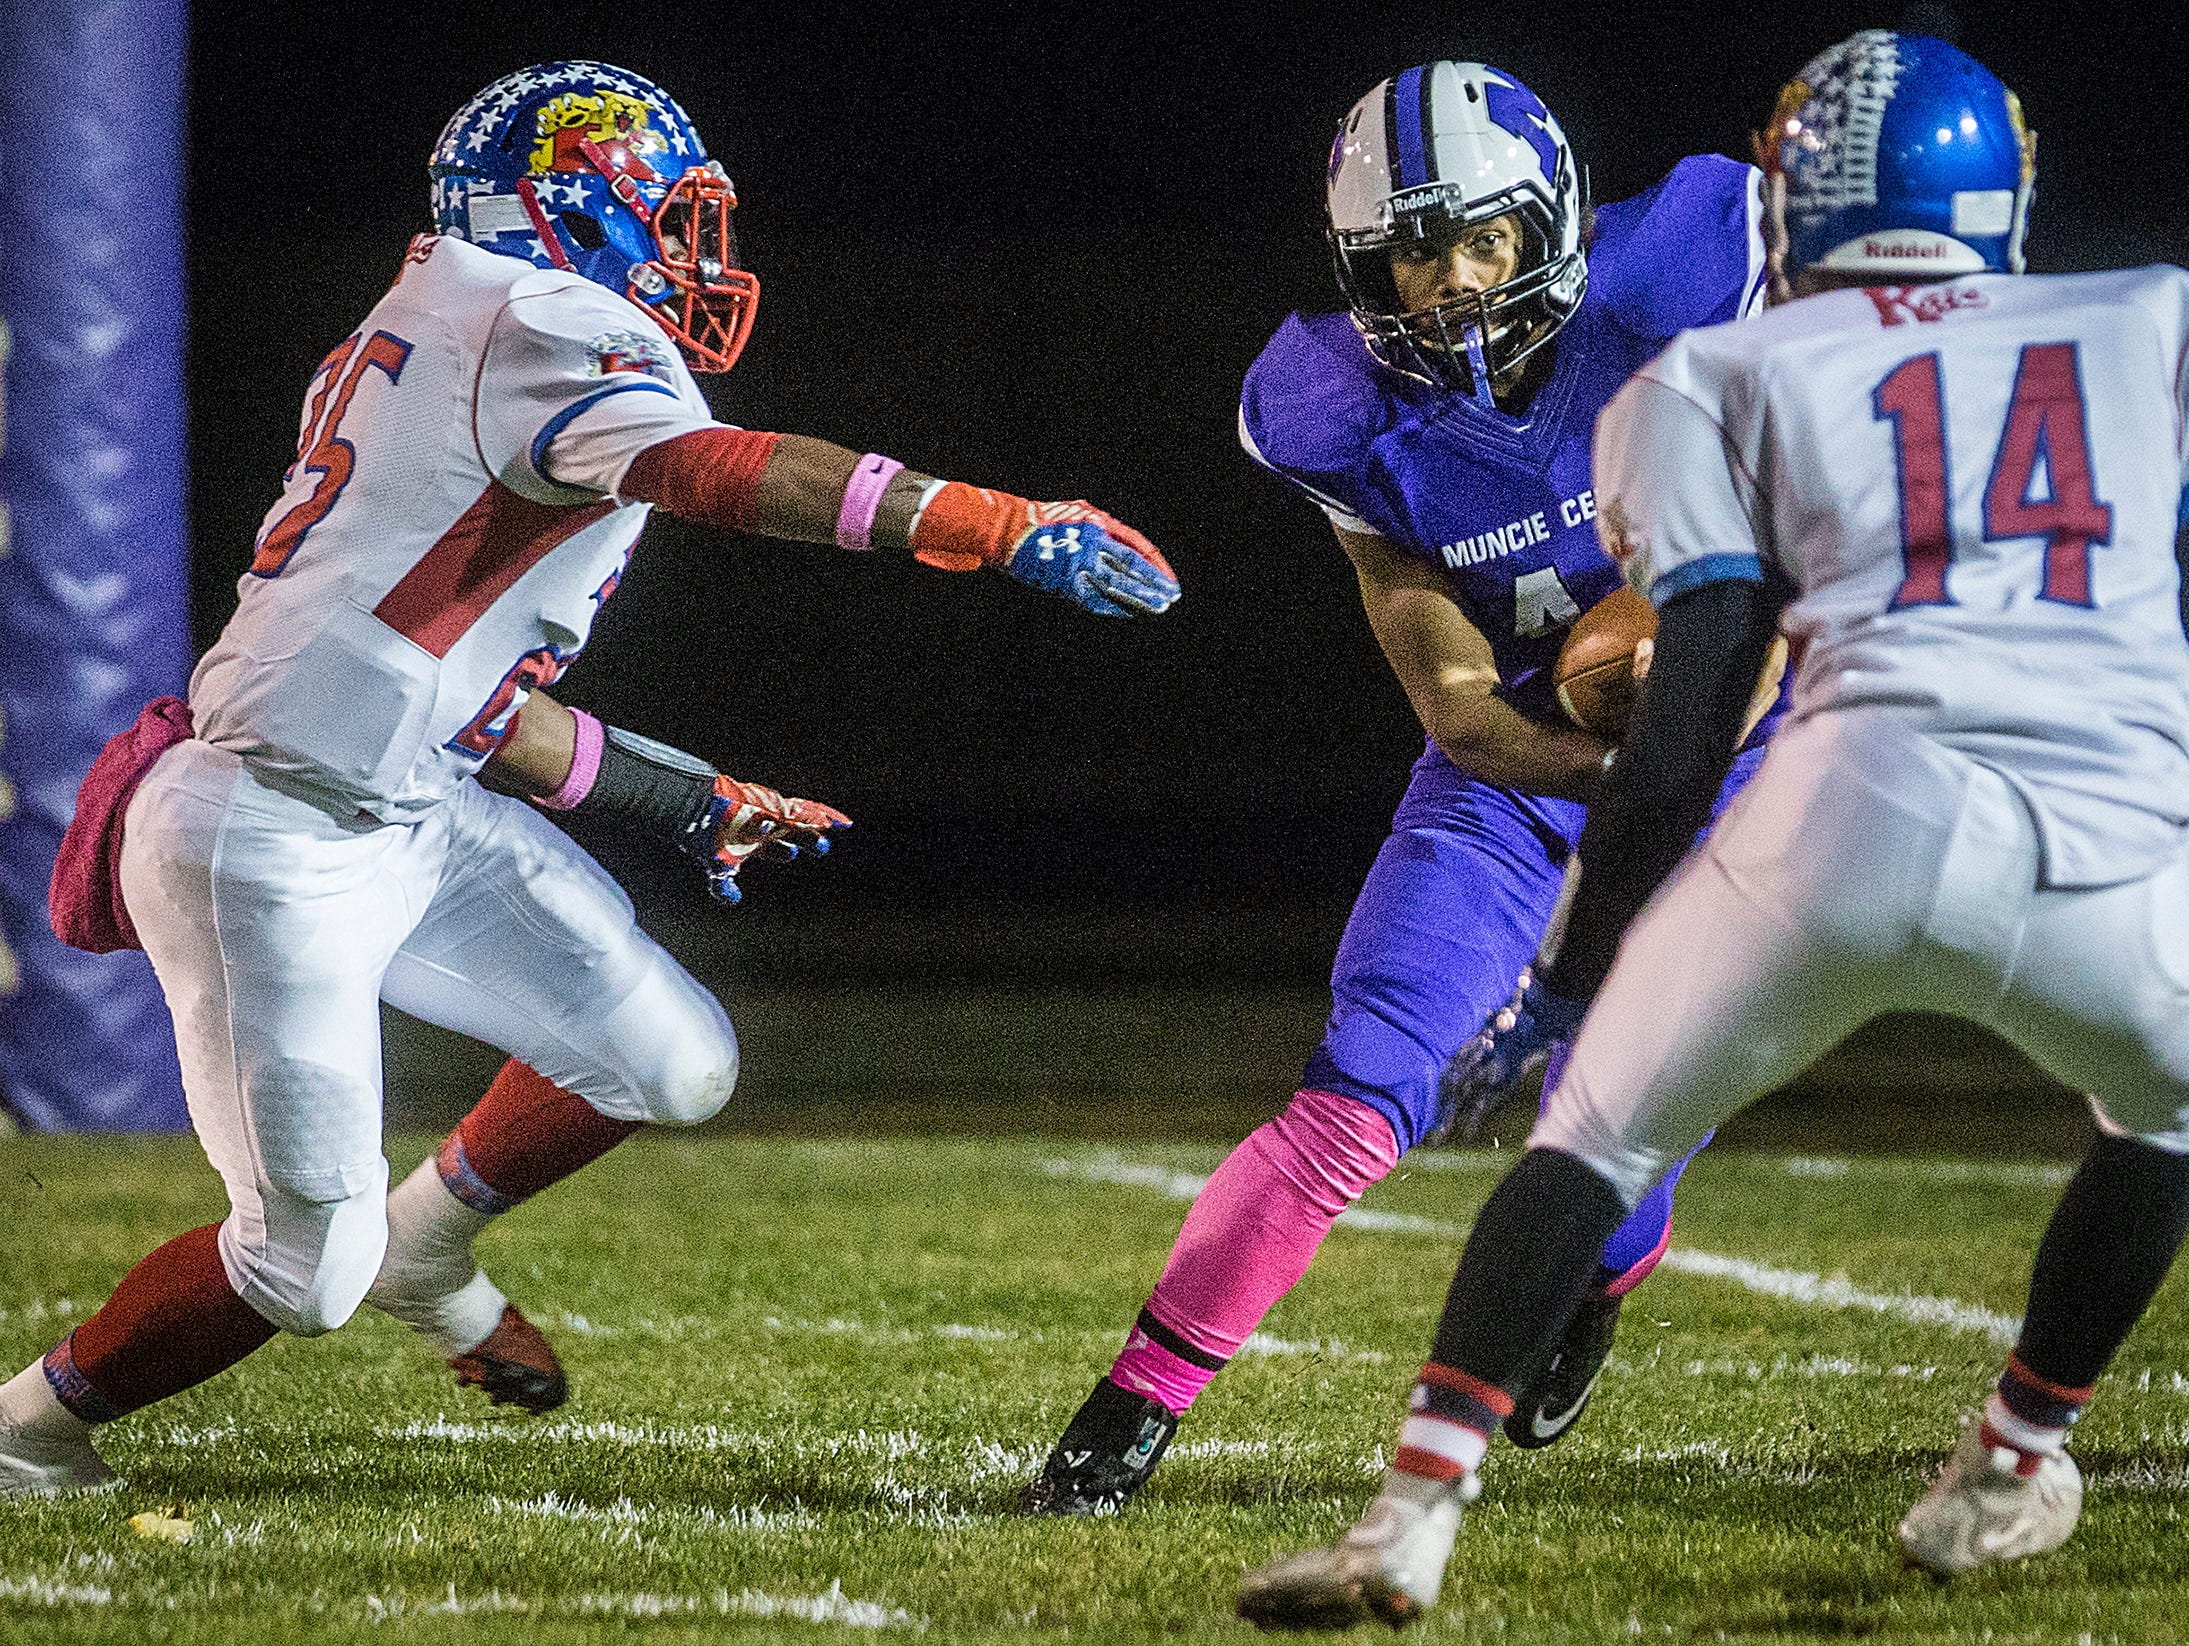 Central's Andre Wells looks for an opening in Kokomo's defense during their game at Central Friday, Oct. 30, 2015.